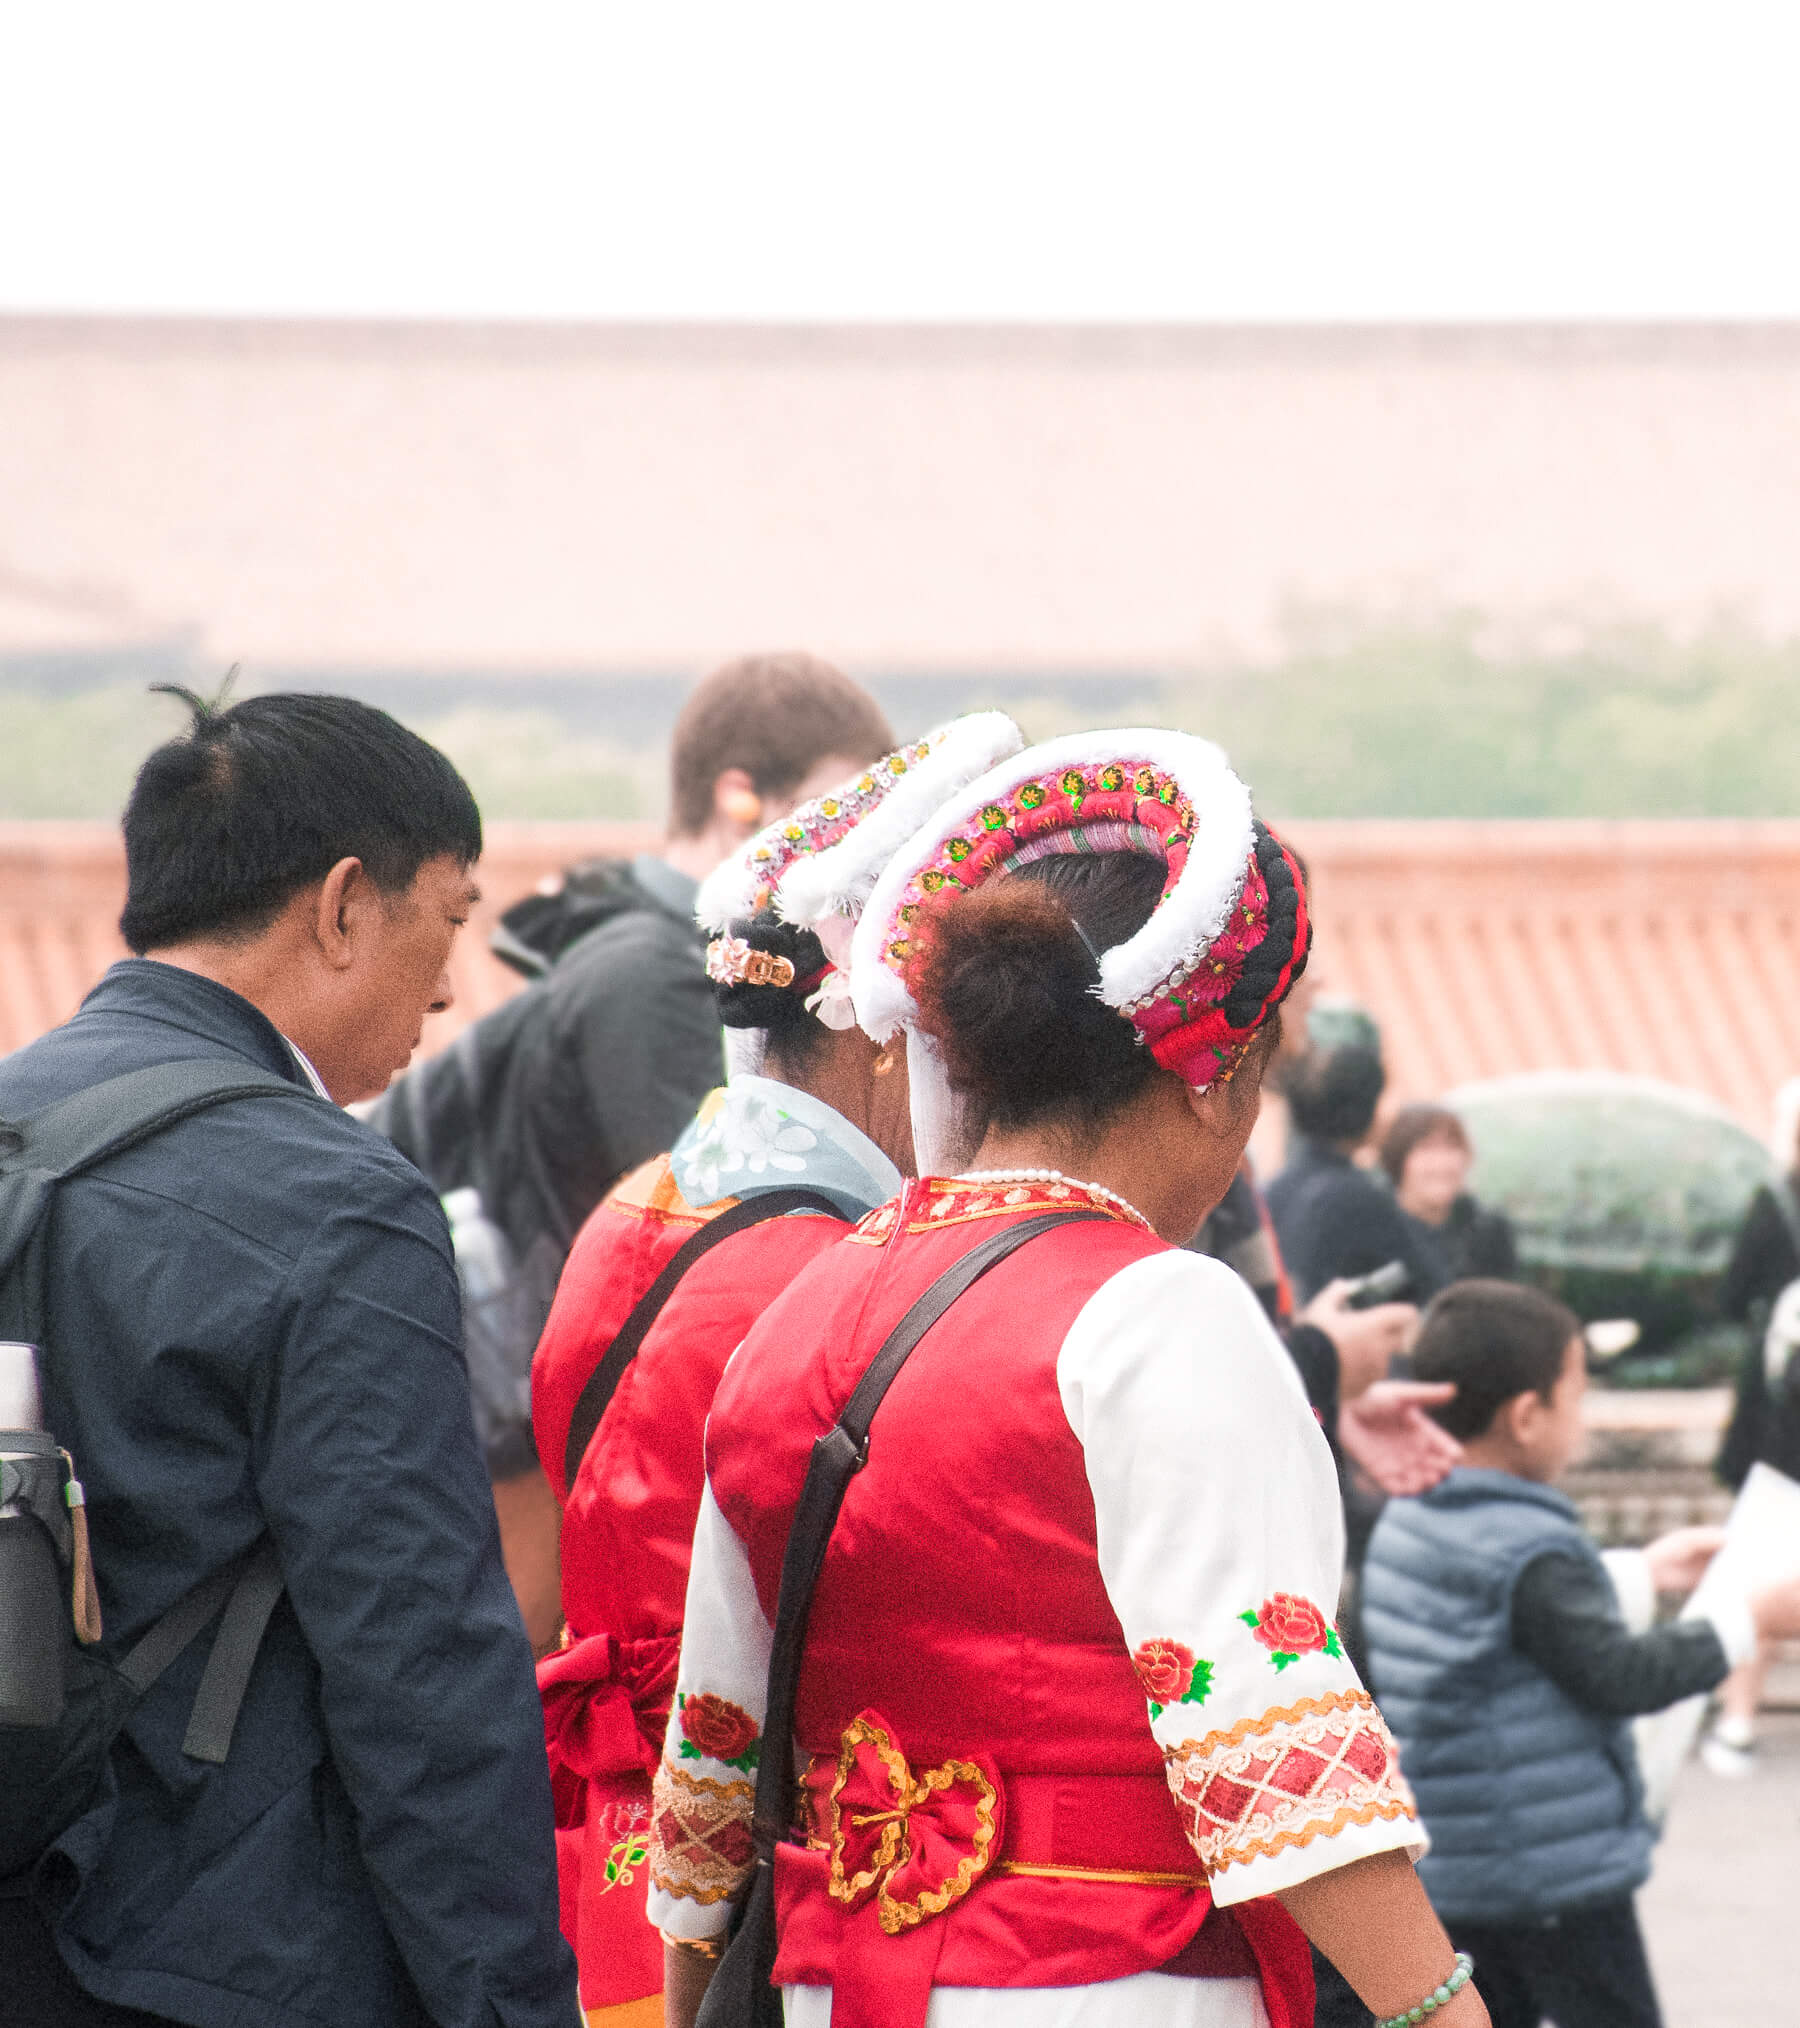 Chinese ladies walking away from the camera in traditional red Chinese outfits, wearing a white and red headpiece